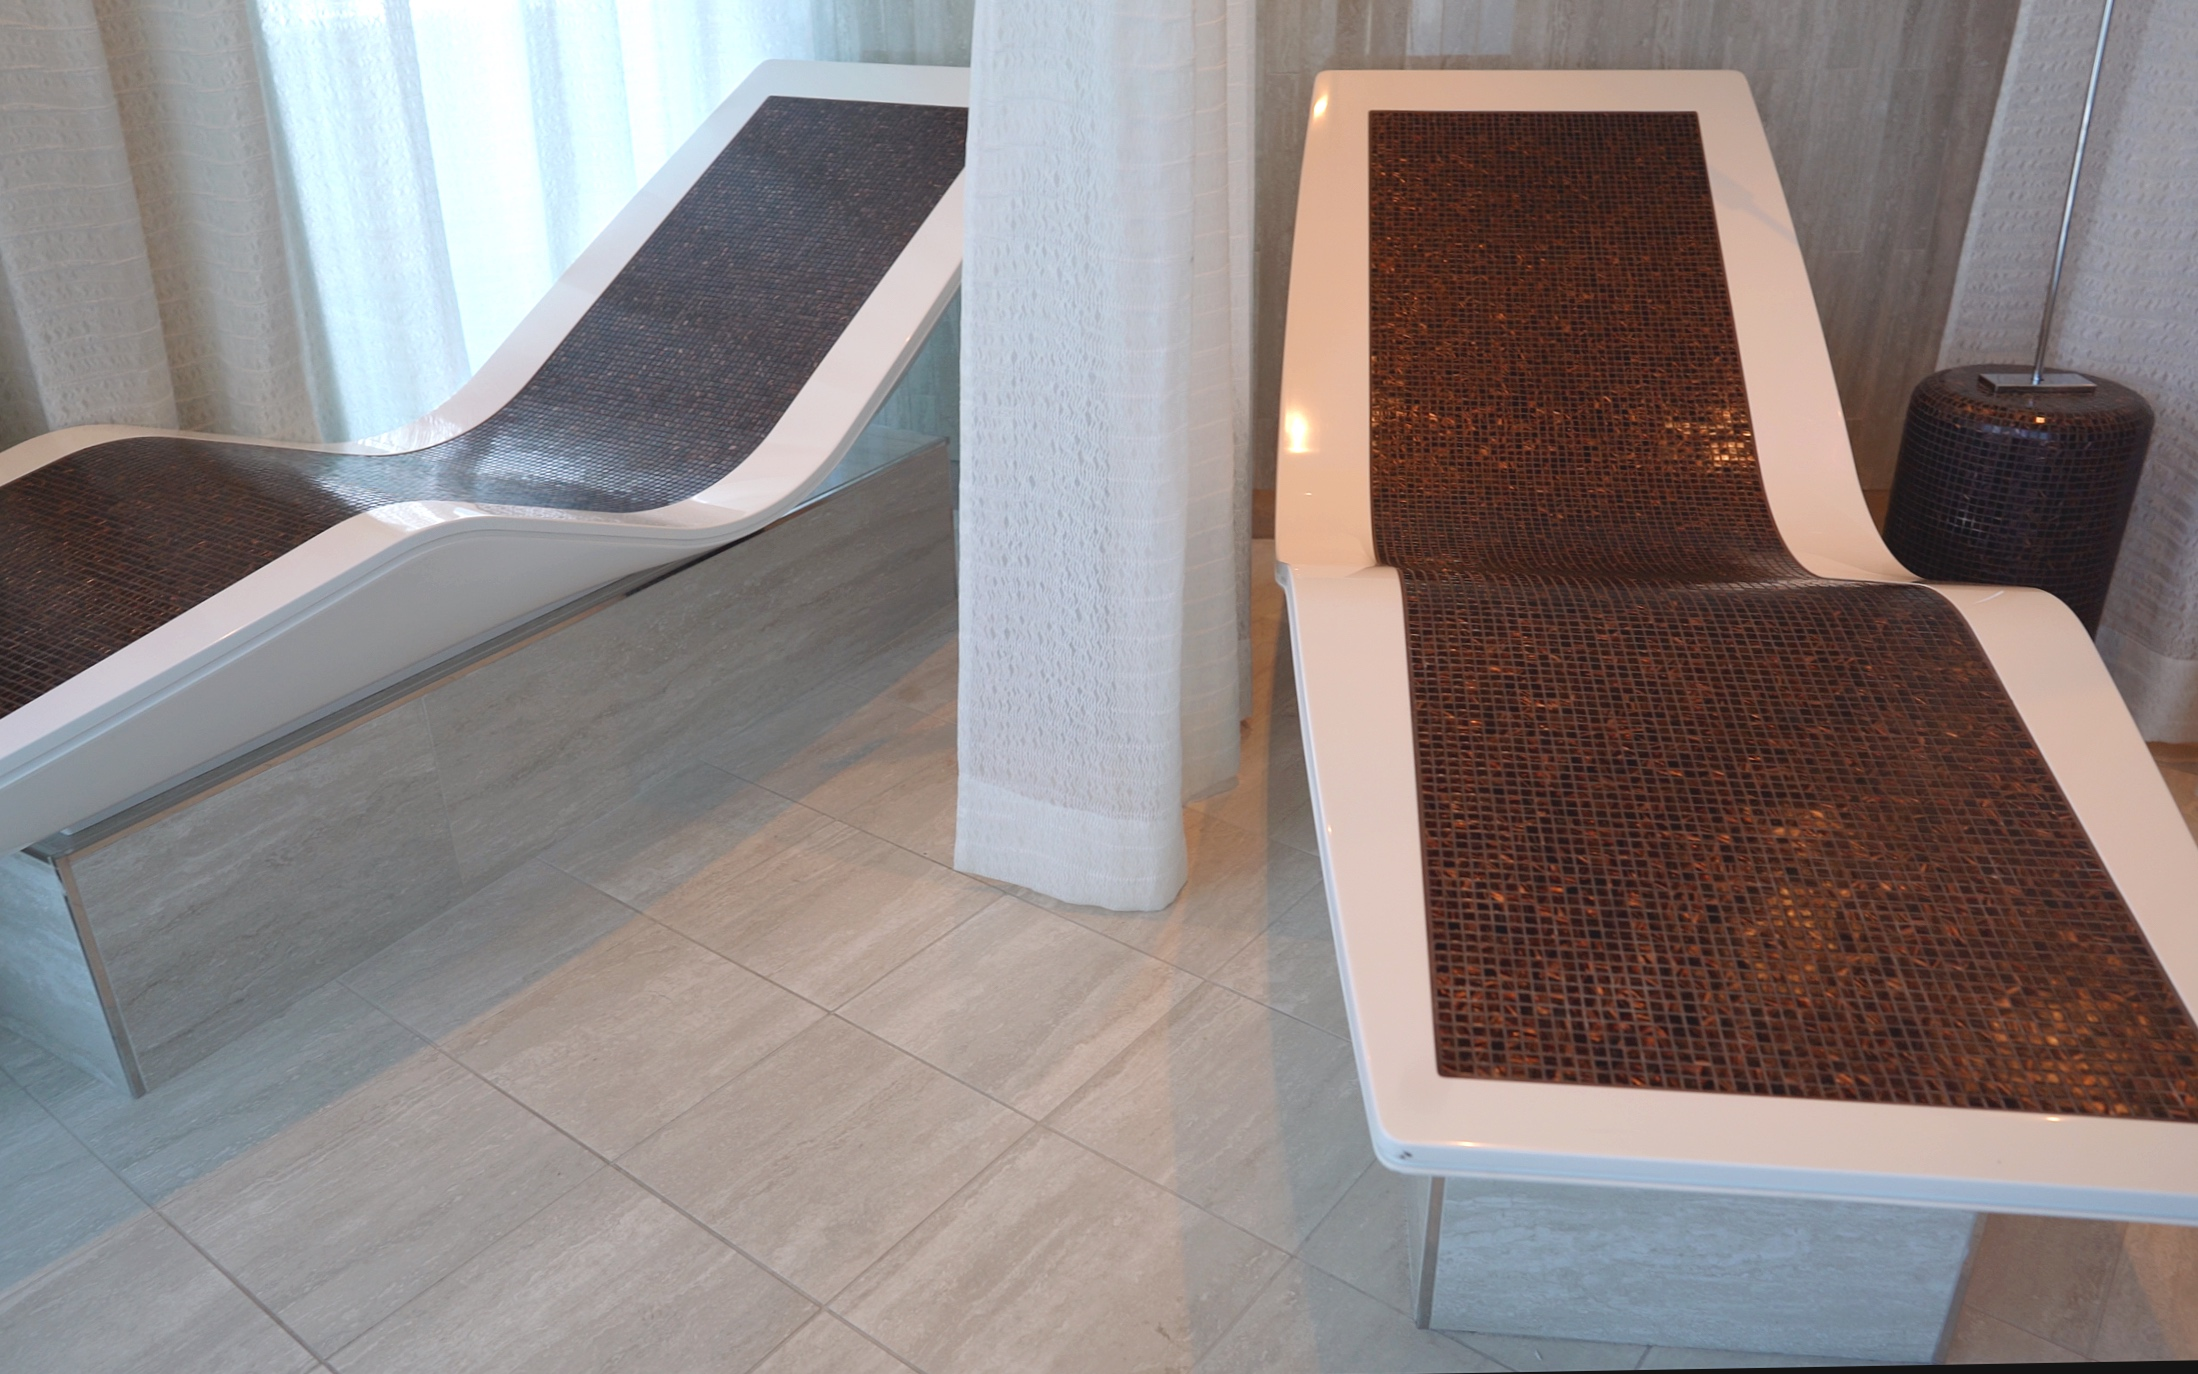 The Spa hot stone beds